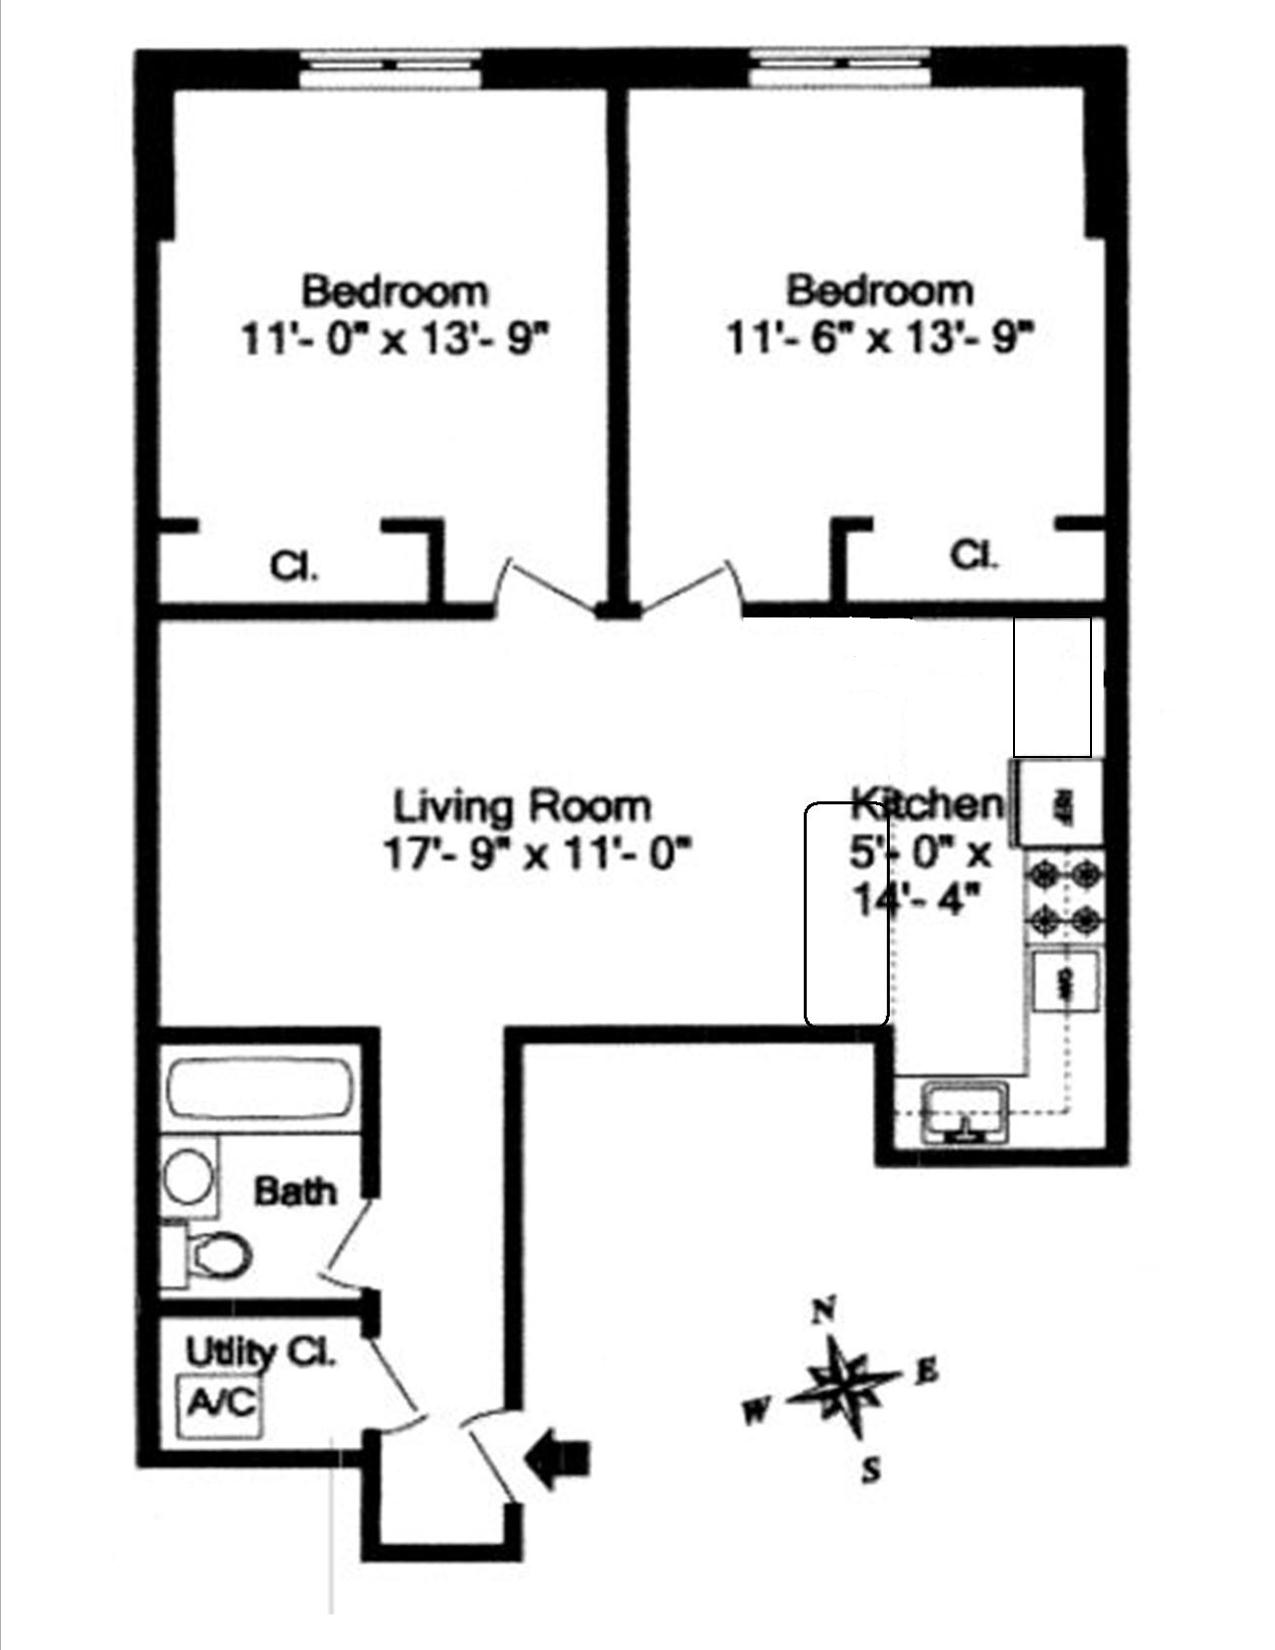 BEAUTIFUL 2BR CONDOMINIUM - GREAT LAYOUT - KING SIZED BEDROOMS